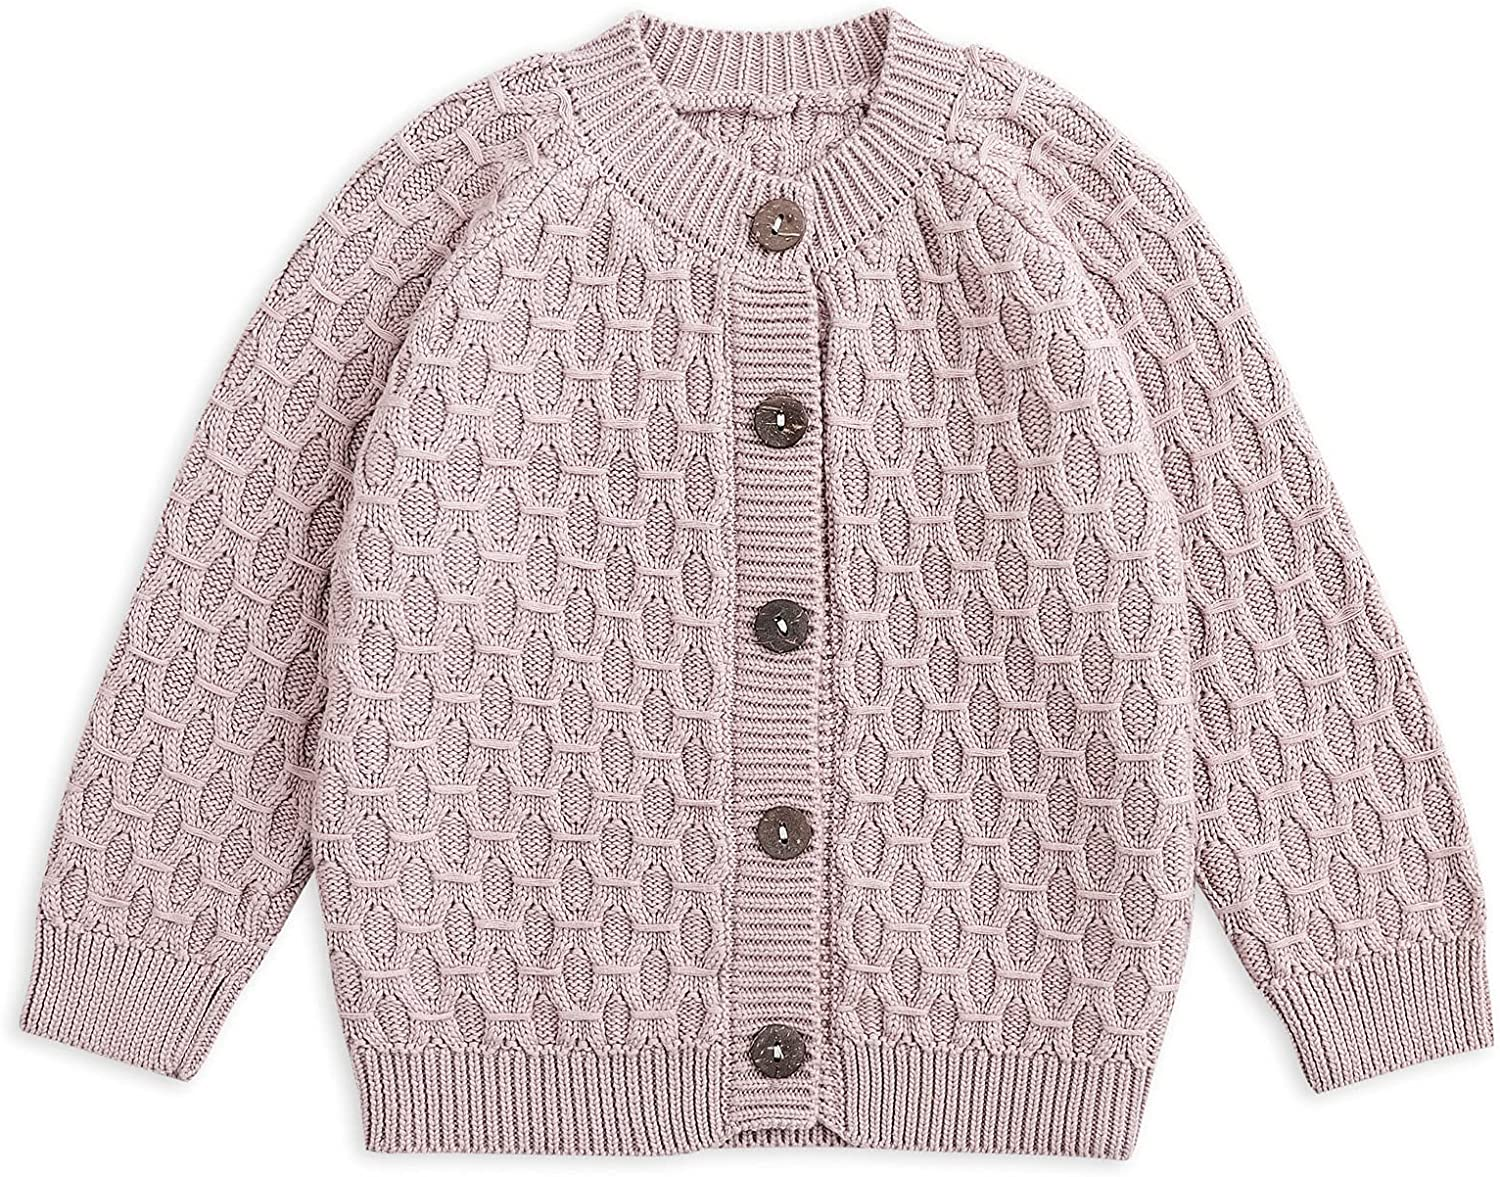 Simplee kids At the price Baby Sweater Cable Thick Knitting Cardi Unisex Ranking TOP5